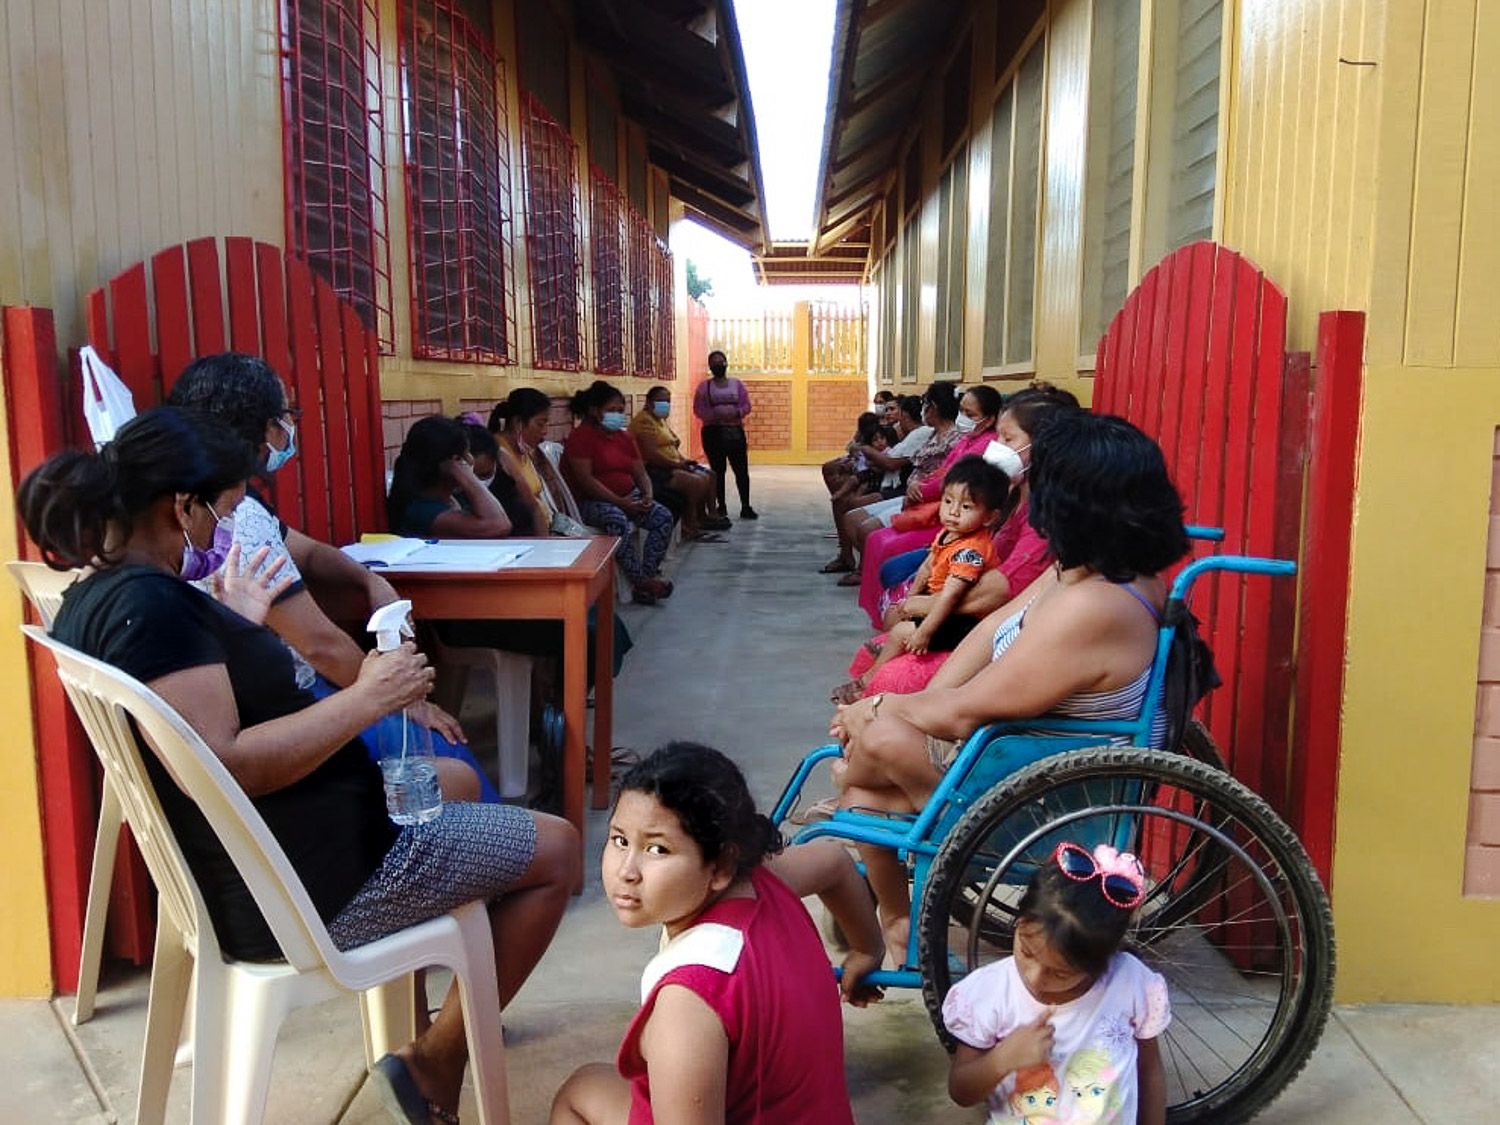 Patients wait to be seen at the medical dispensary for covid symptoms and dengue fever.